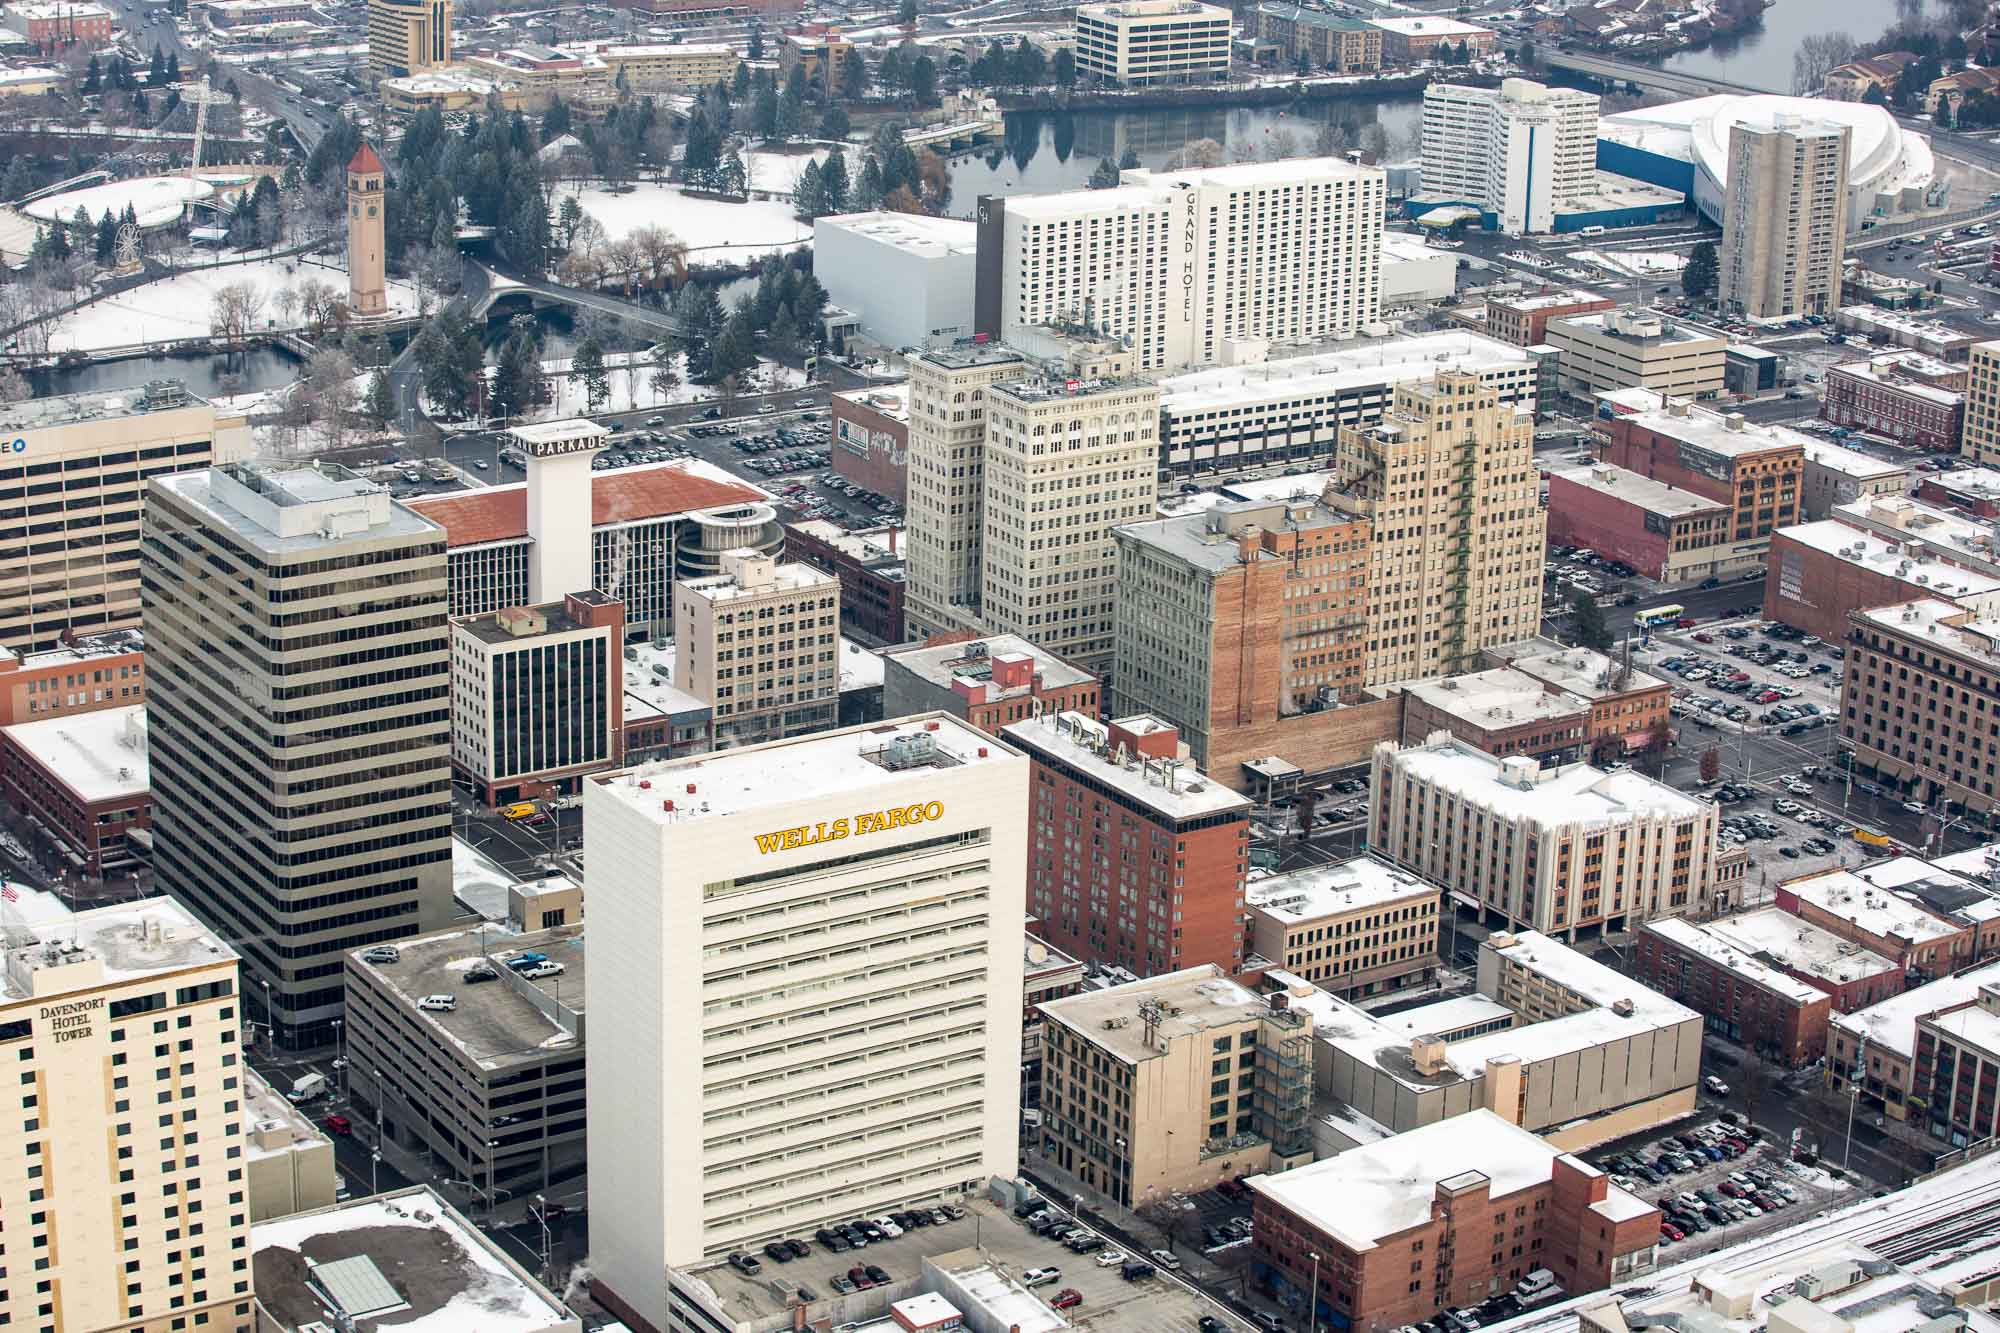 Aerial Photo of Spokane Downtown City Buildings